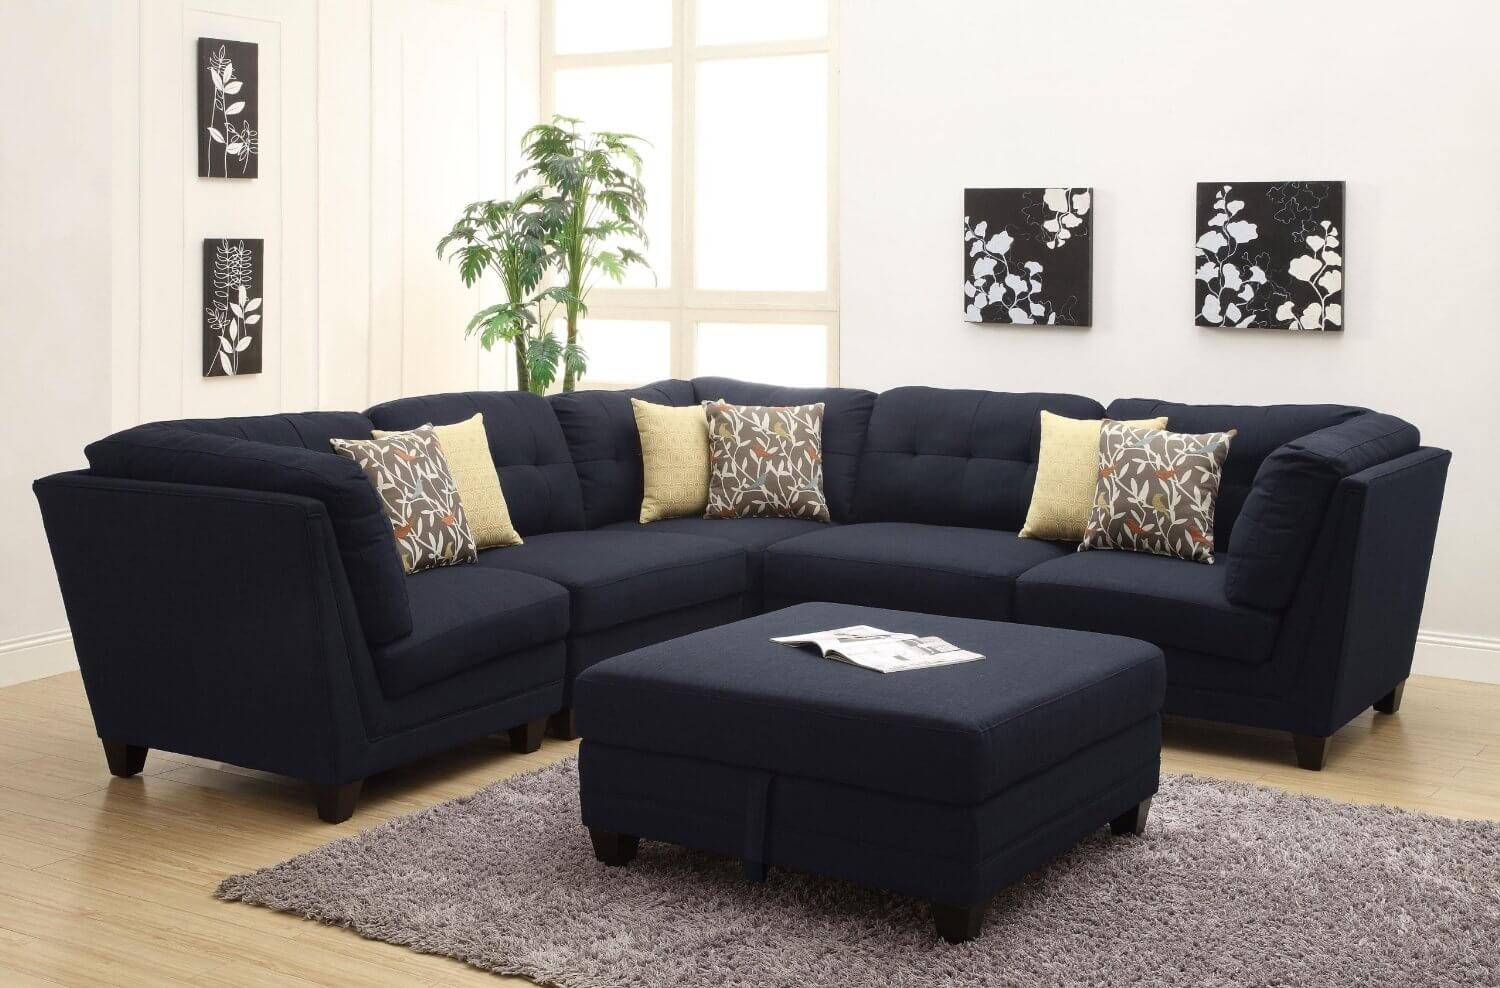 100 Beautiful Sectional Sofas Under 1000 With Abbyson Living Charlotte Dark Brown Sectional Sofa And Ottoman (Image 1 of 15)